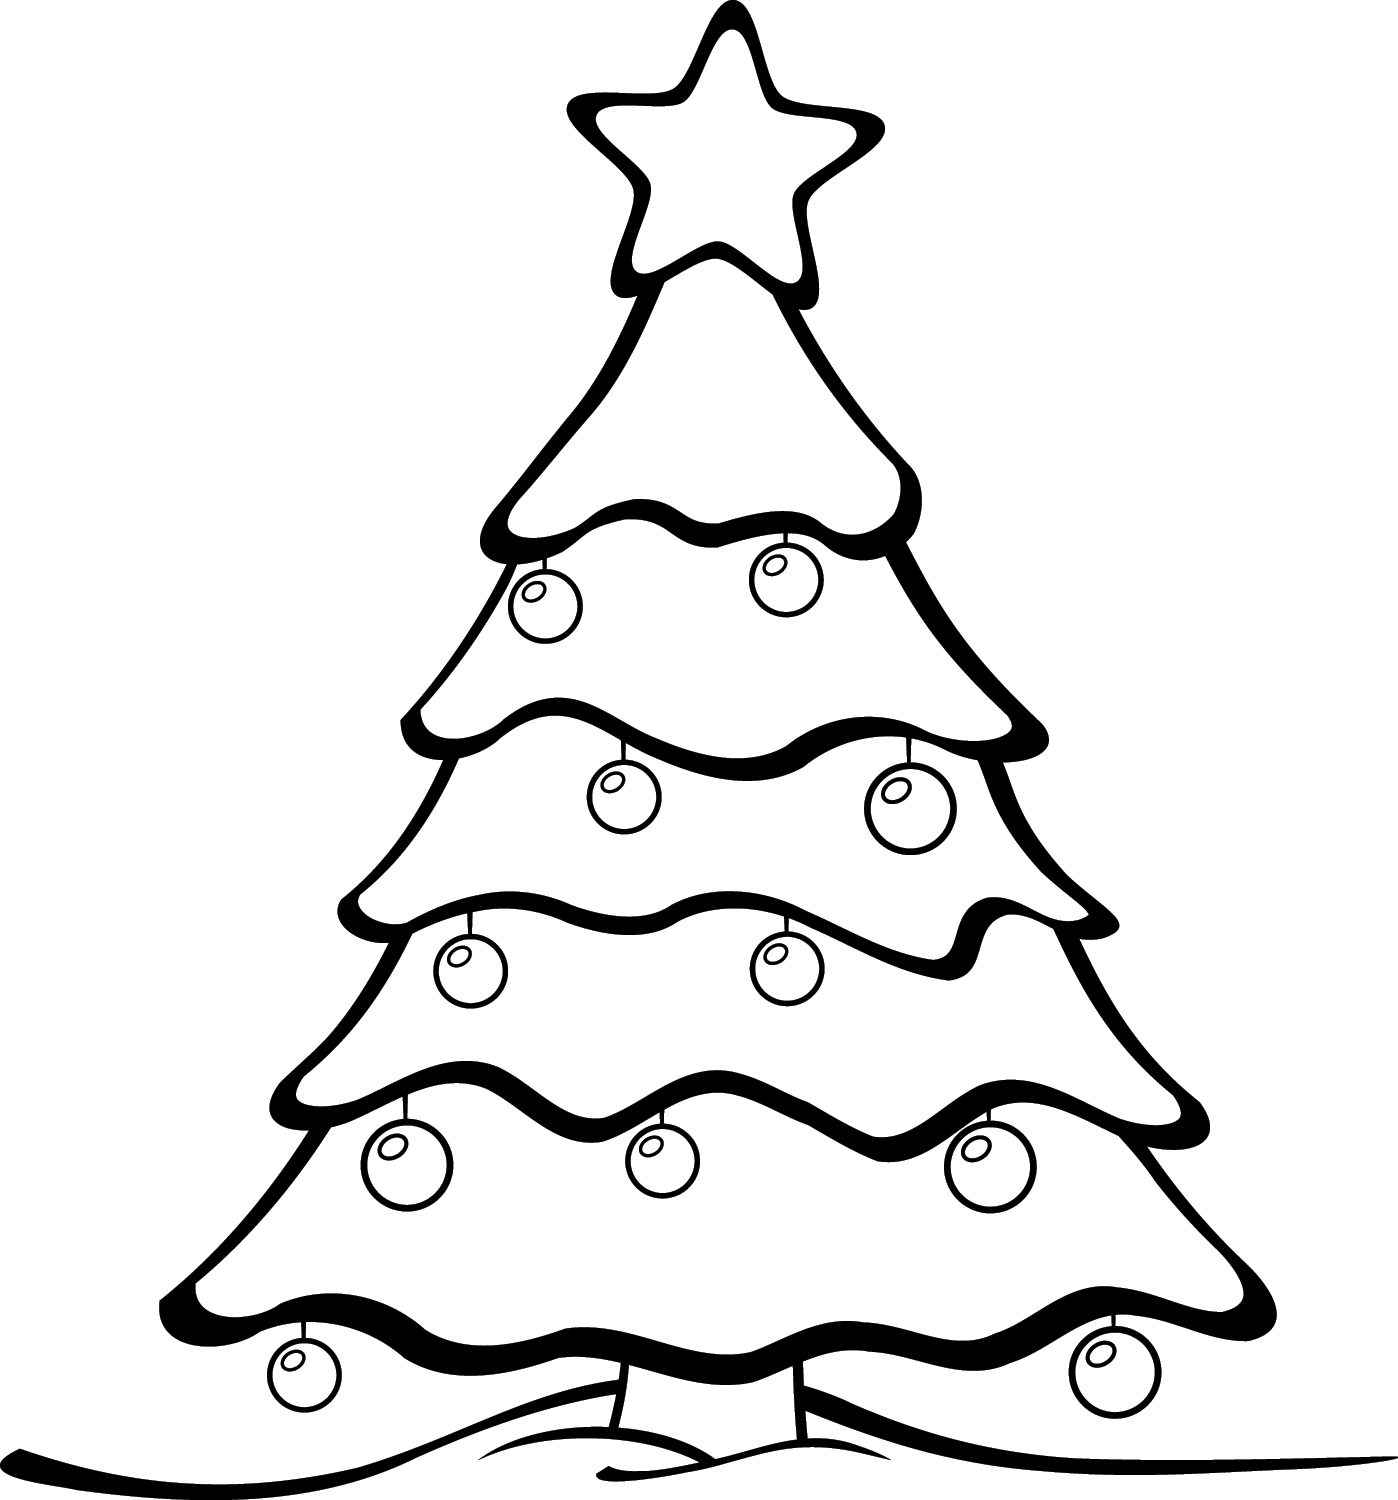 1398x1500 Christmas Tree Drawing 2017 Christmas Tree Drawings Free